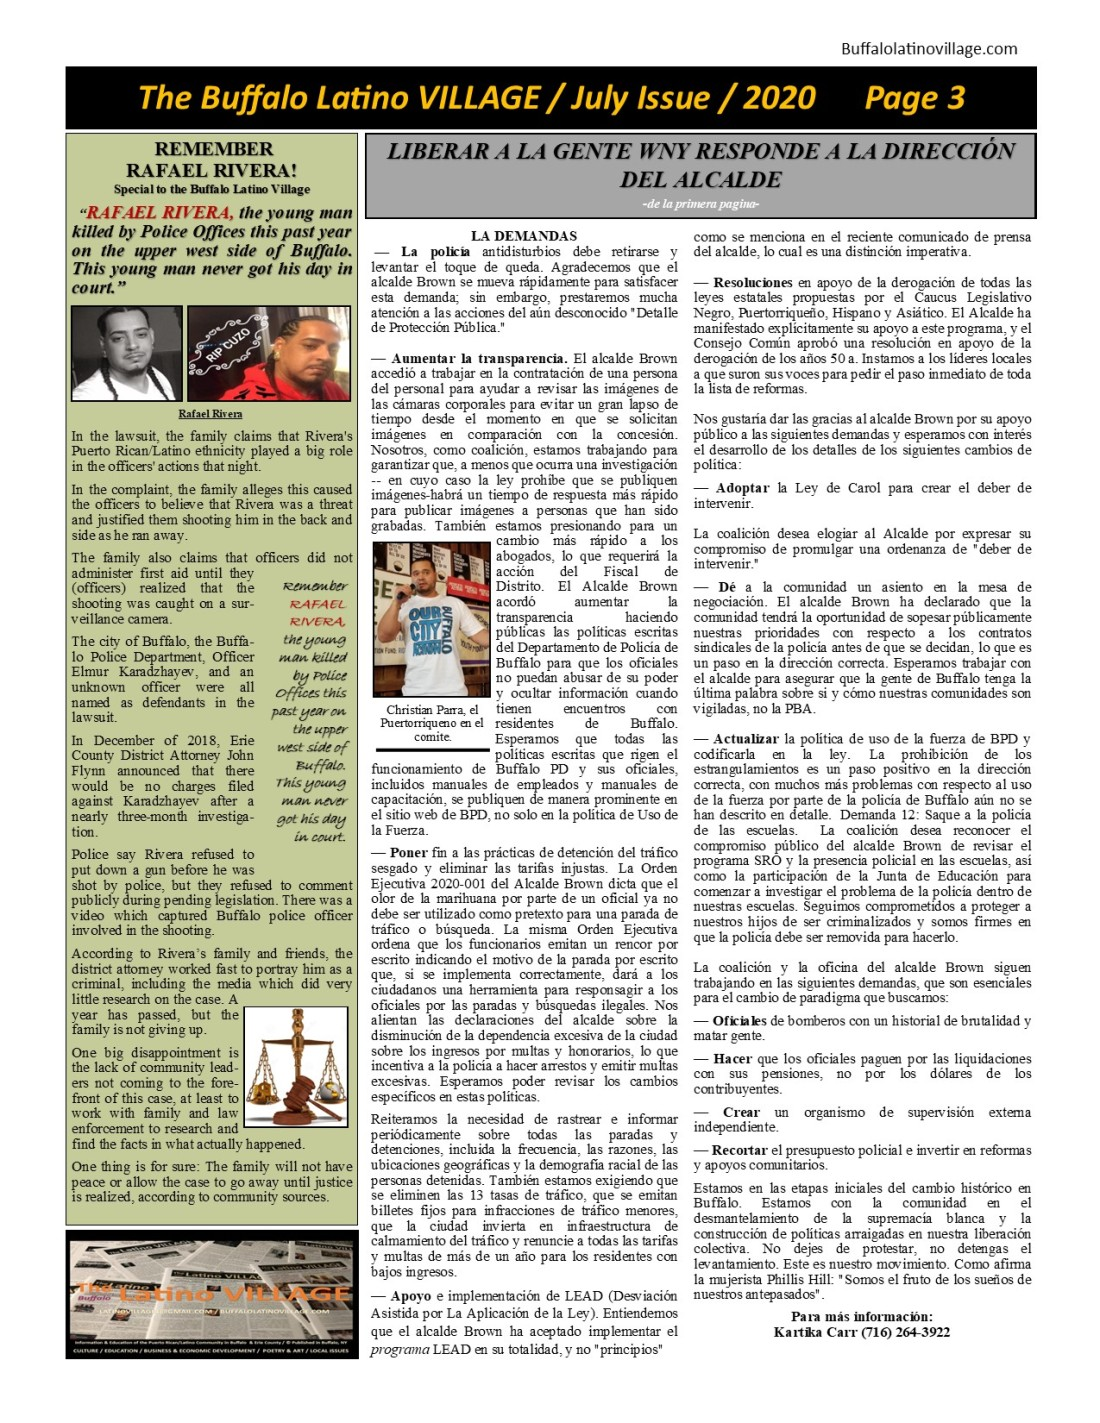 July 2020 Page 3